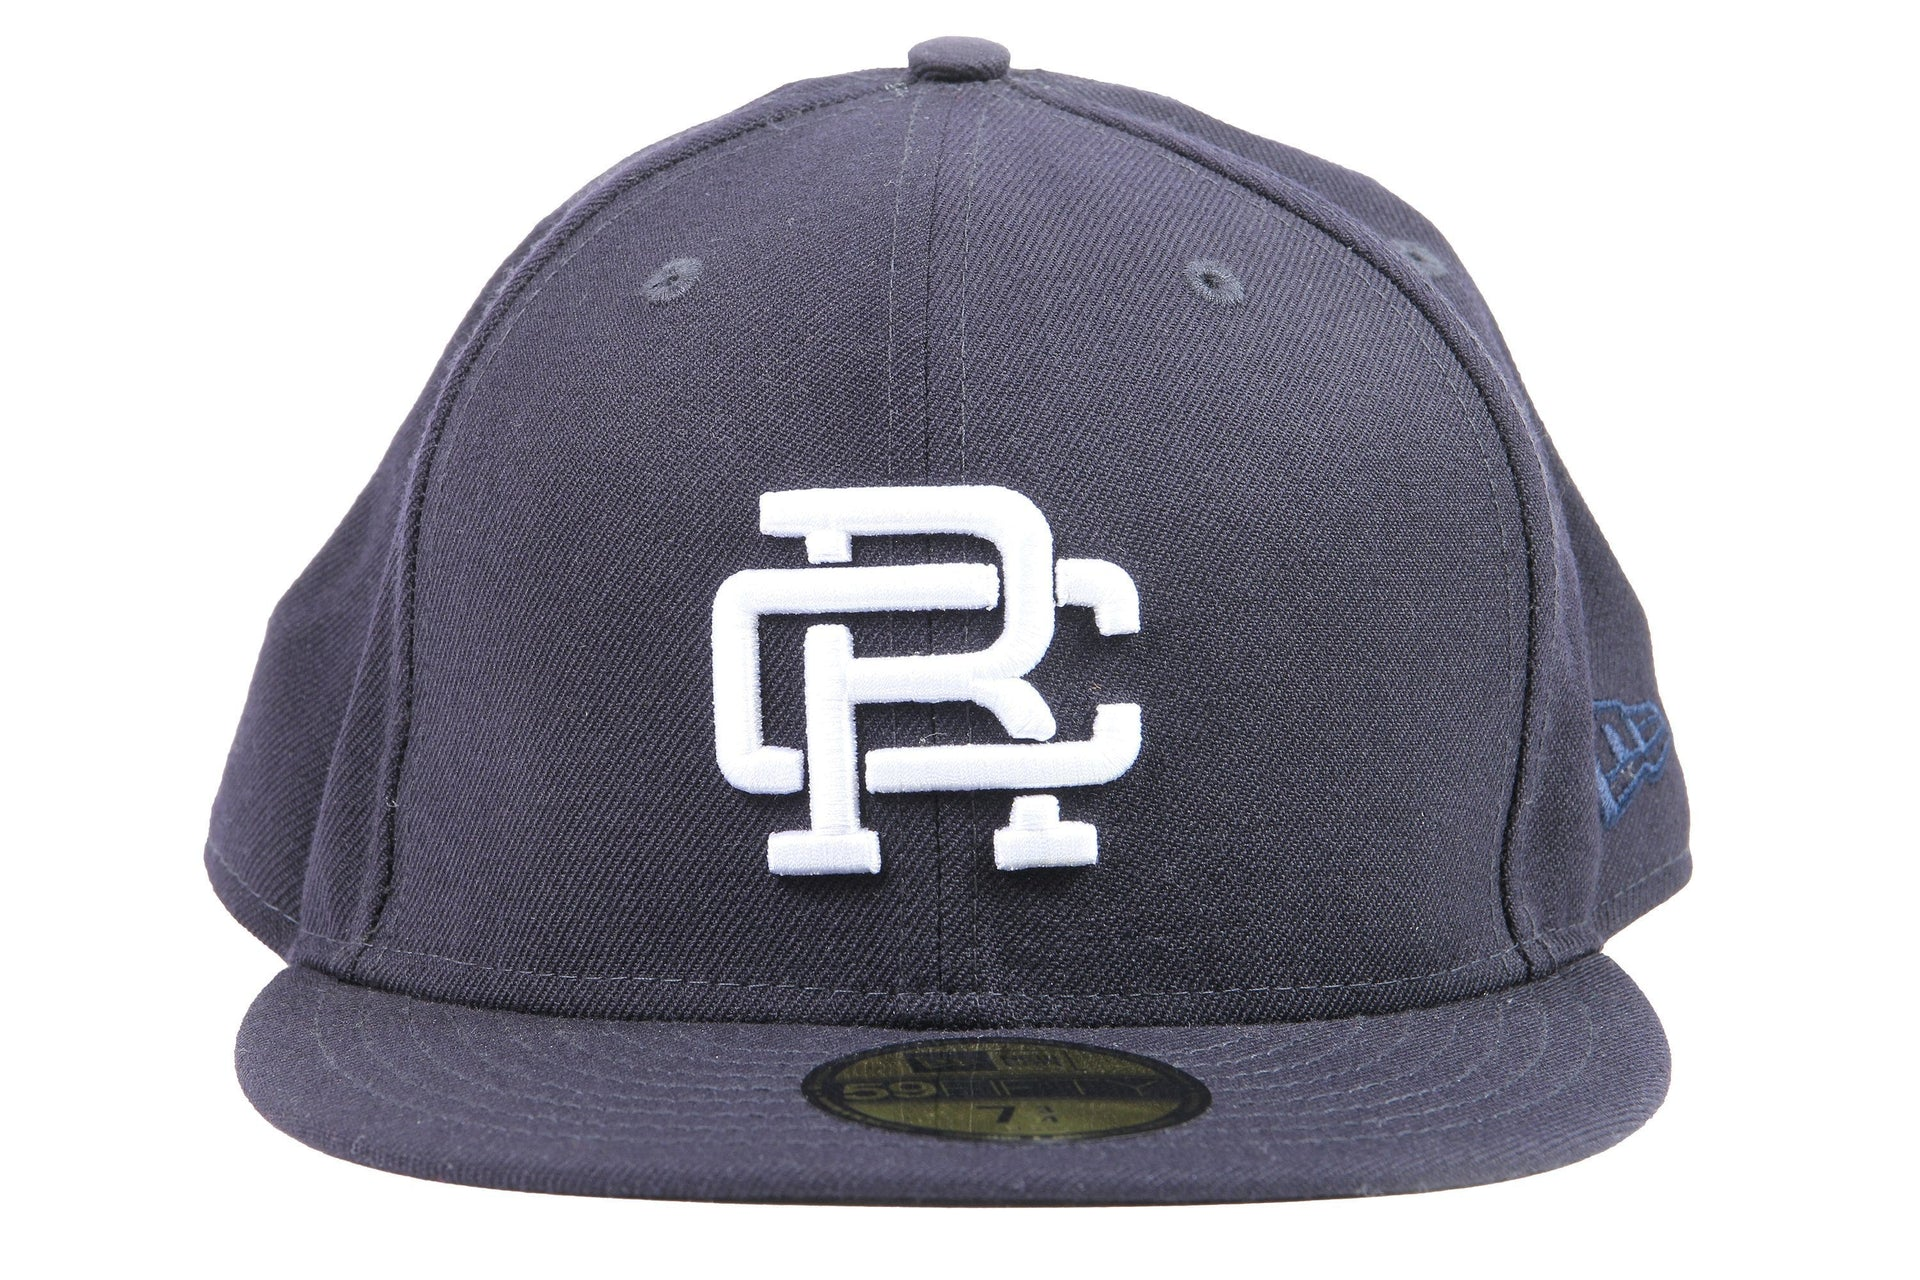 1a067c18558 NAVY WOVEN NEW ERA RC EMBROIDERED HAT RC-7052 HATS REIGNING CHAMP NAVY 7 3